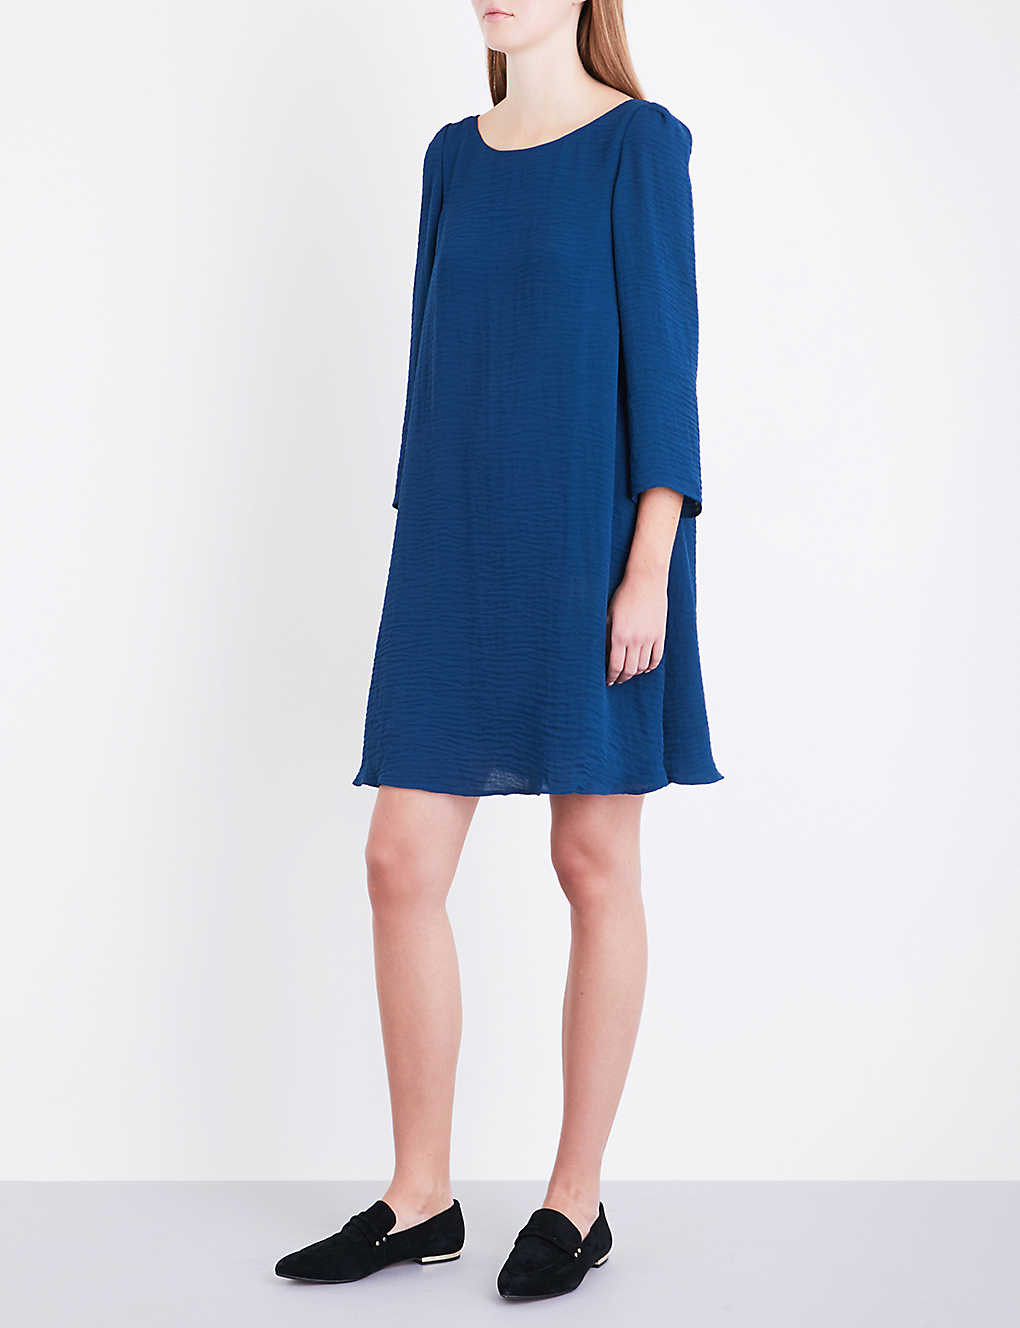 Pierlot Claudie Dress Woven Pierlot Rififi Claudie qFWnUUH